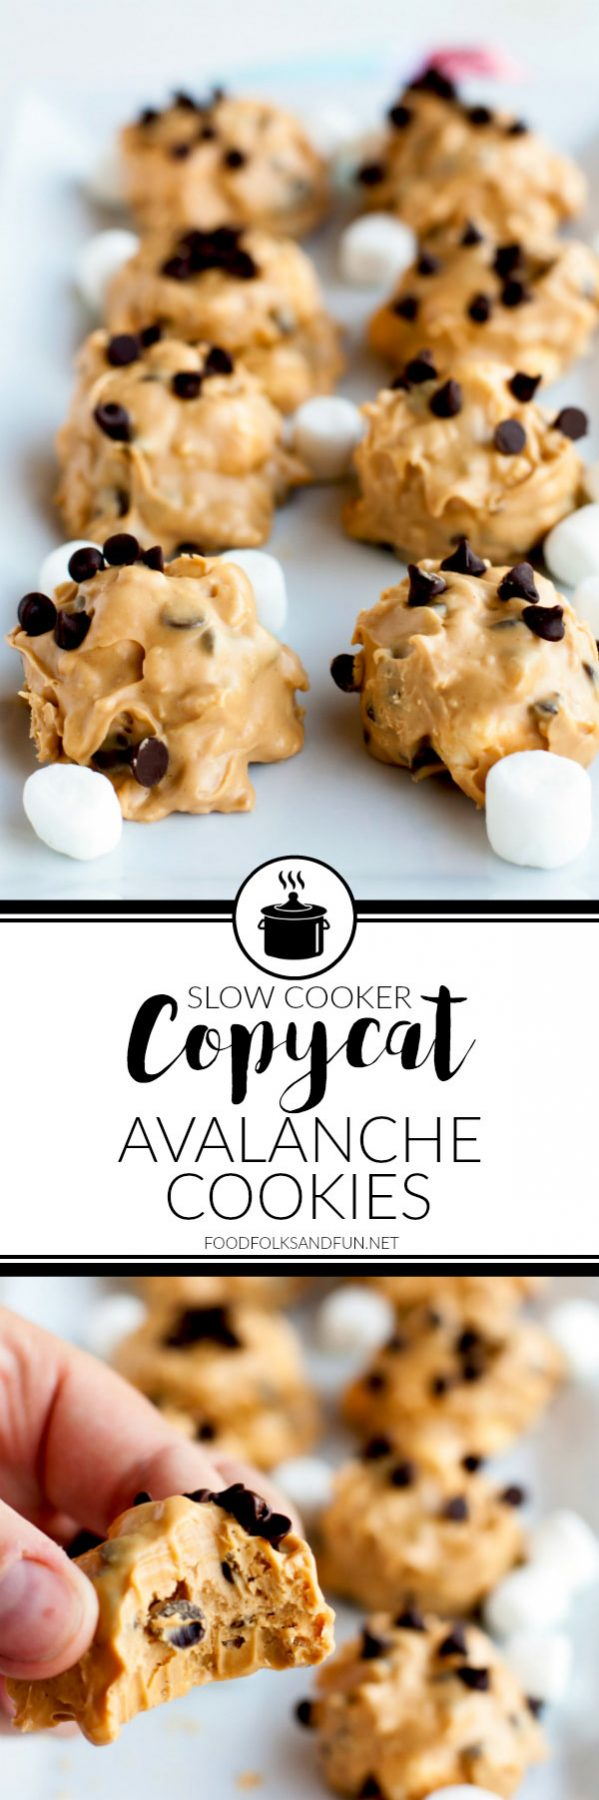 Slow Cooker Copycat Avalanche Cookies • Food, Folks and Fun